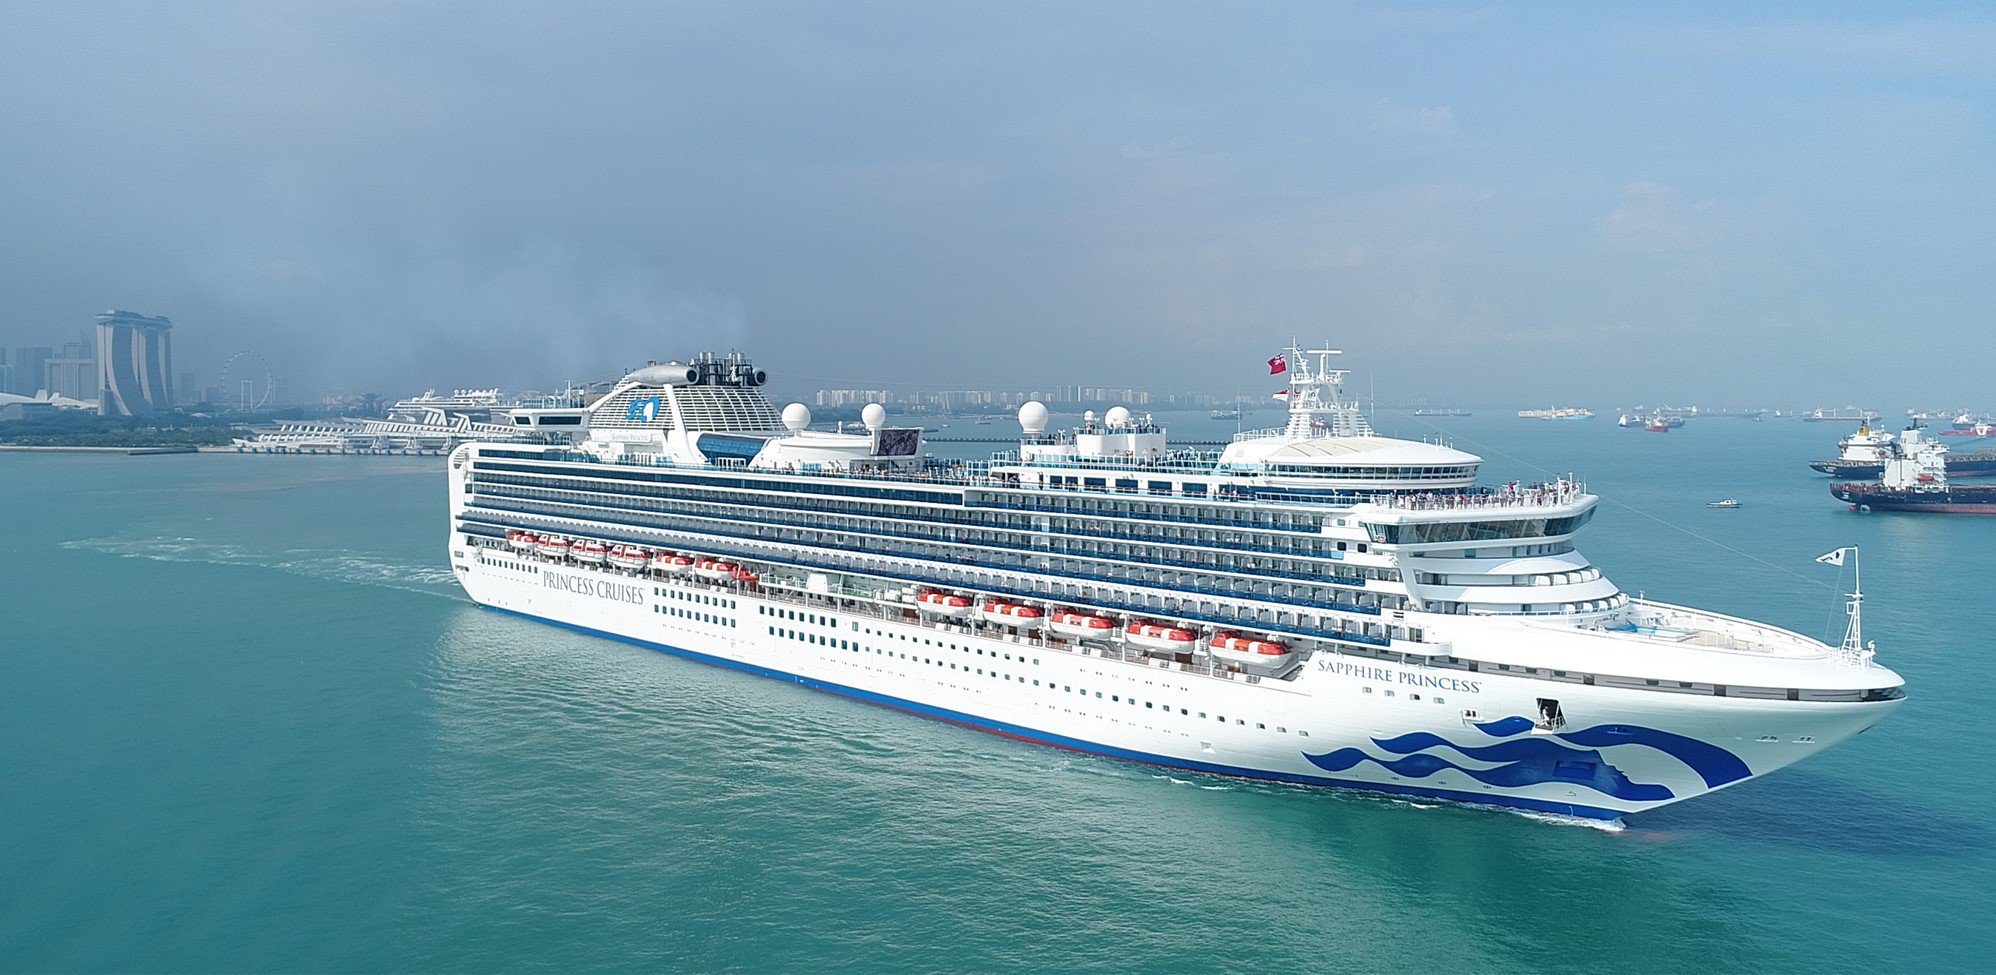 Sapphire Princess Enters Dry Dock - Cruise Critic Message Board Forums